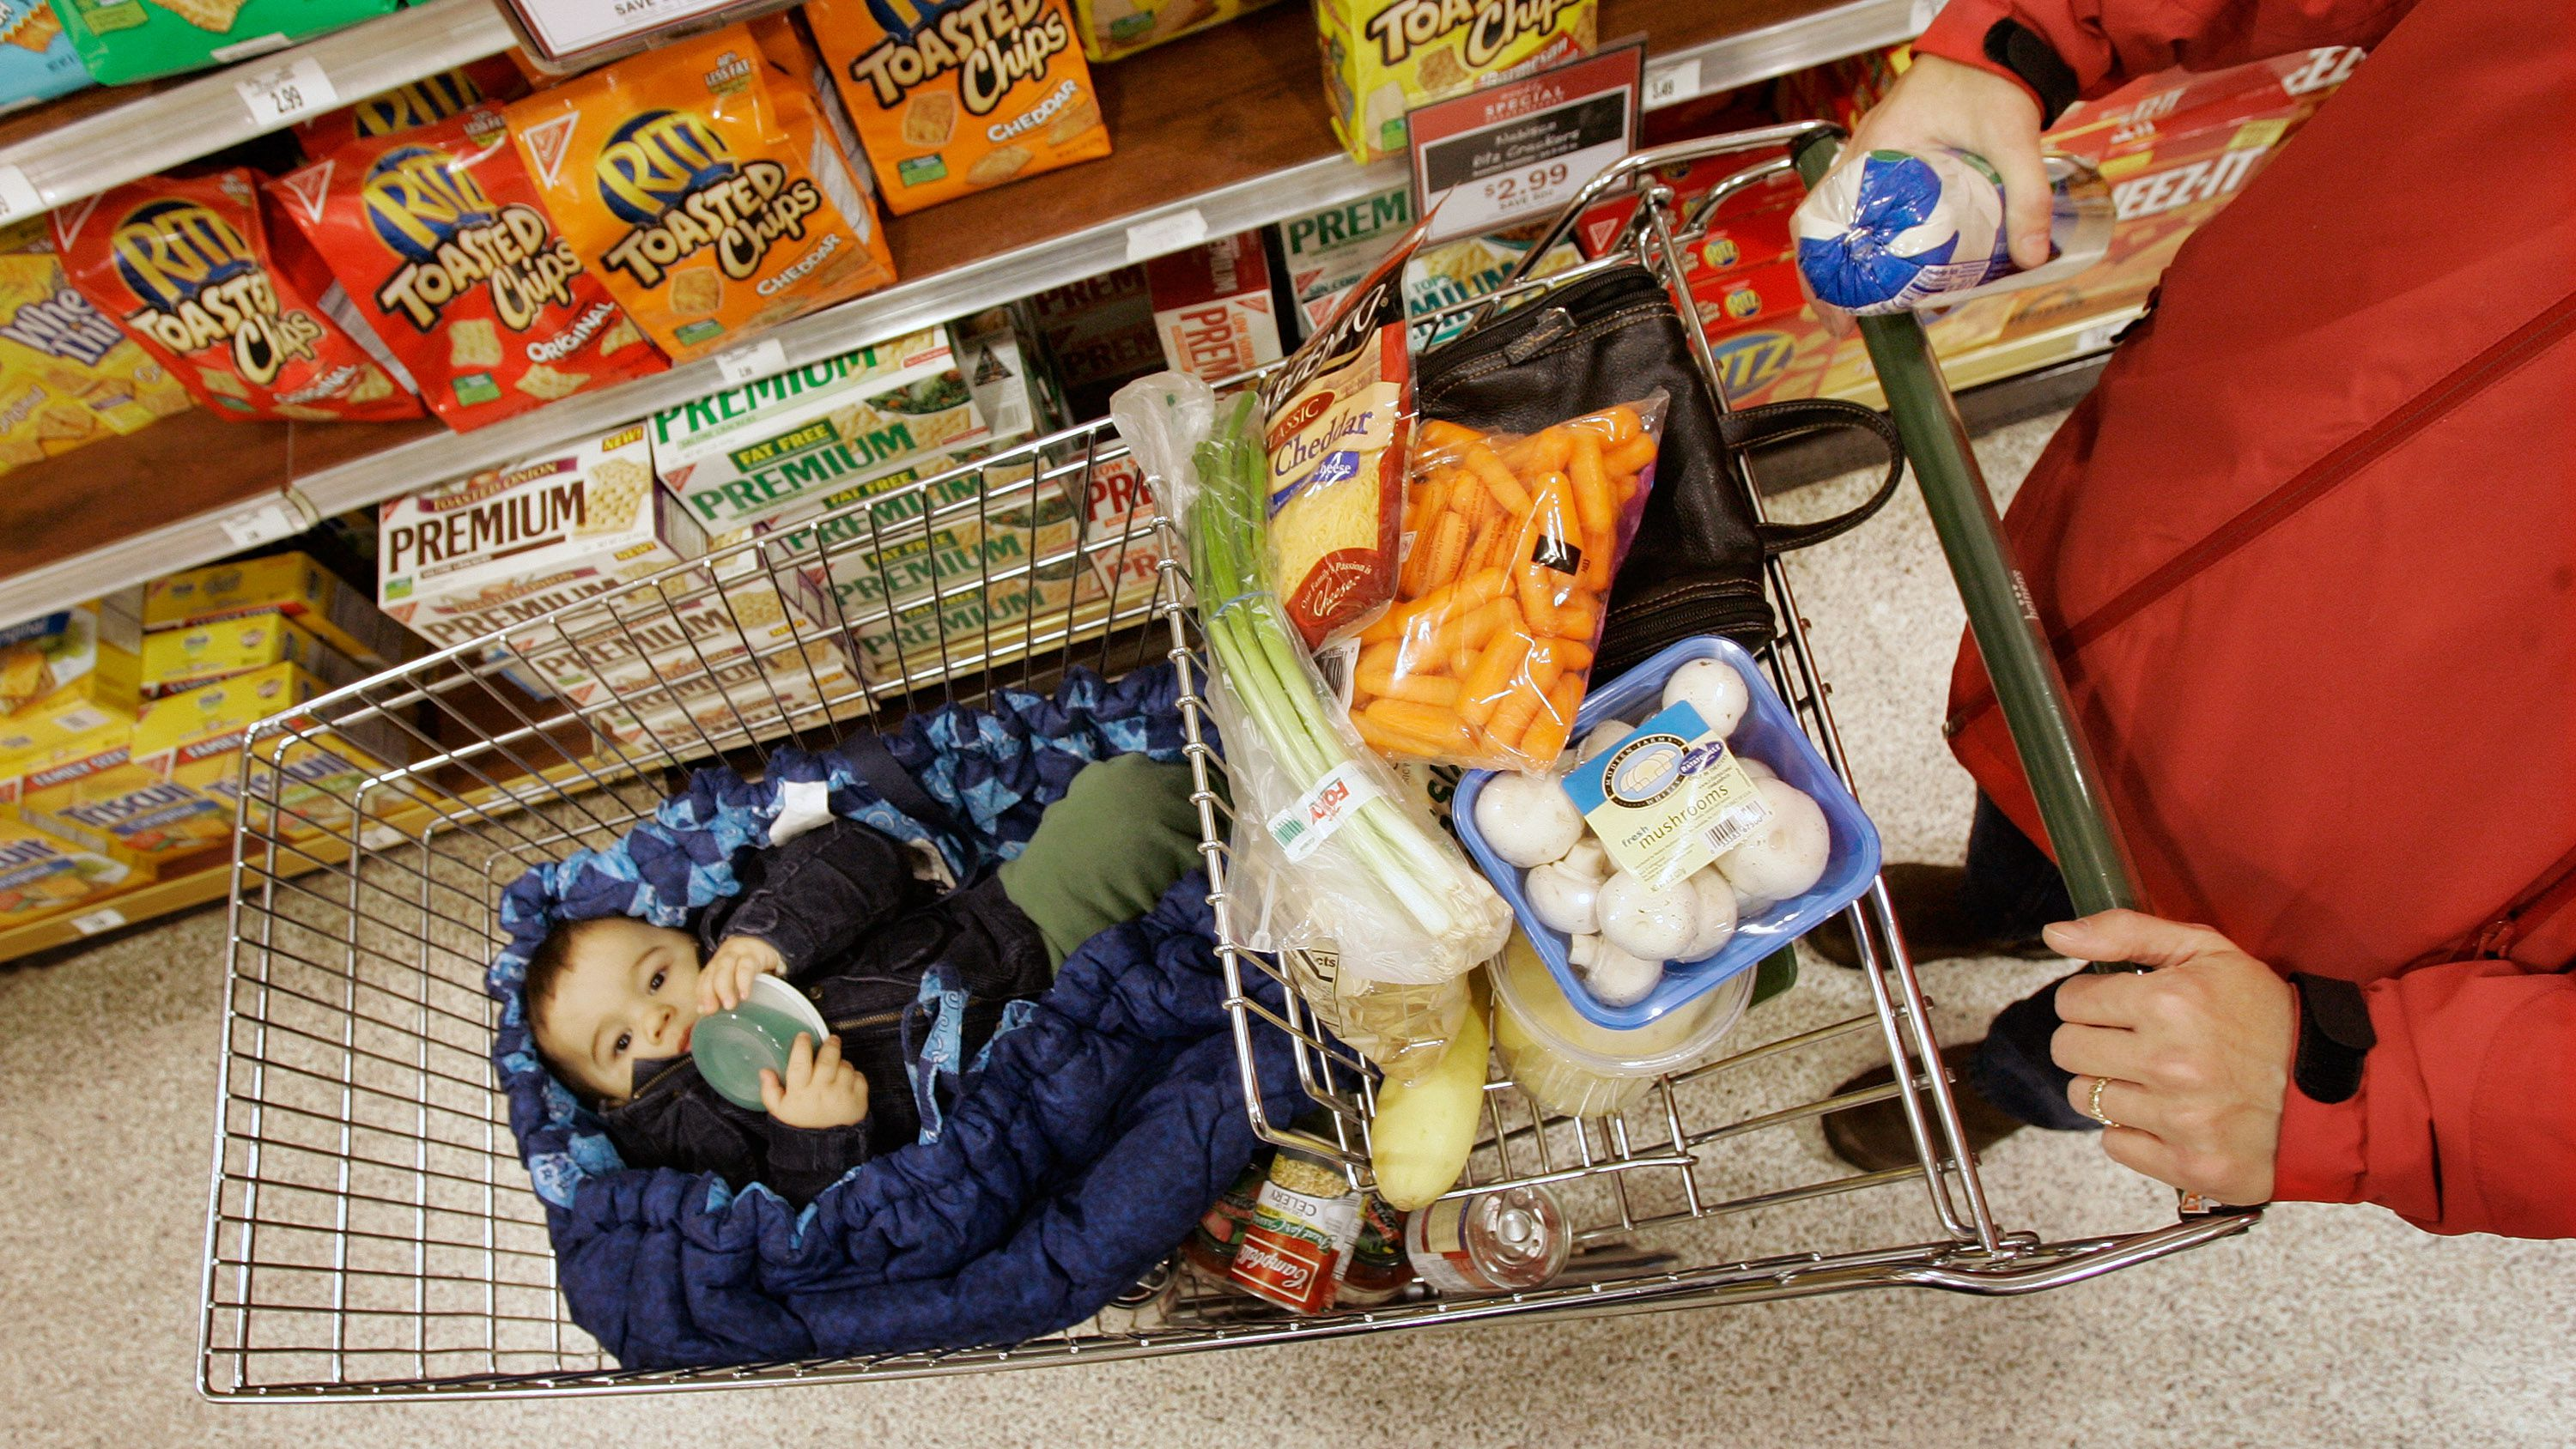 A shopper takes her son along for the ride which shopping at the Heinen's grocery store in Bainbridge Twp., Ohio in this Dec. 13, 2007 file photo. Steadily rising food costs aren't just causing grocery shoppers to do a double-take at the checkout line _ they're also changing the very ways we feed our families. (AP Photo/Amy Sancetta, file)